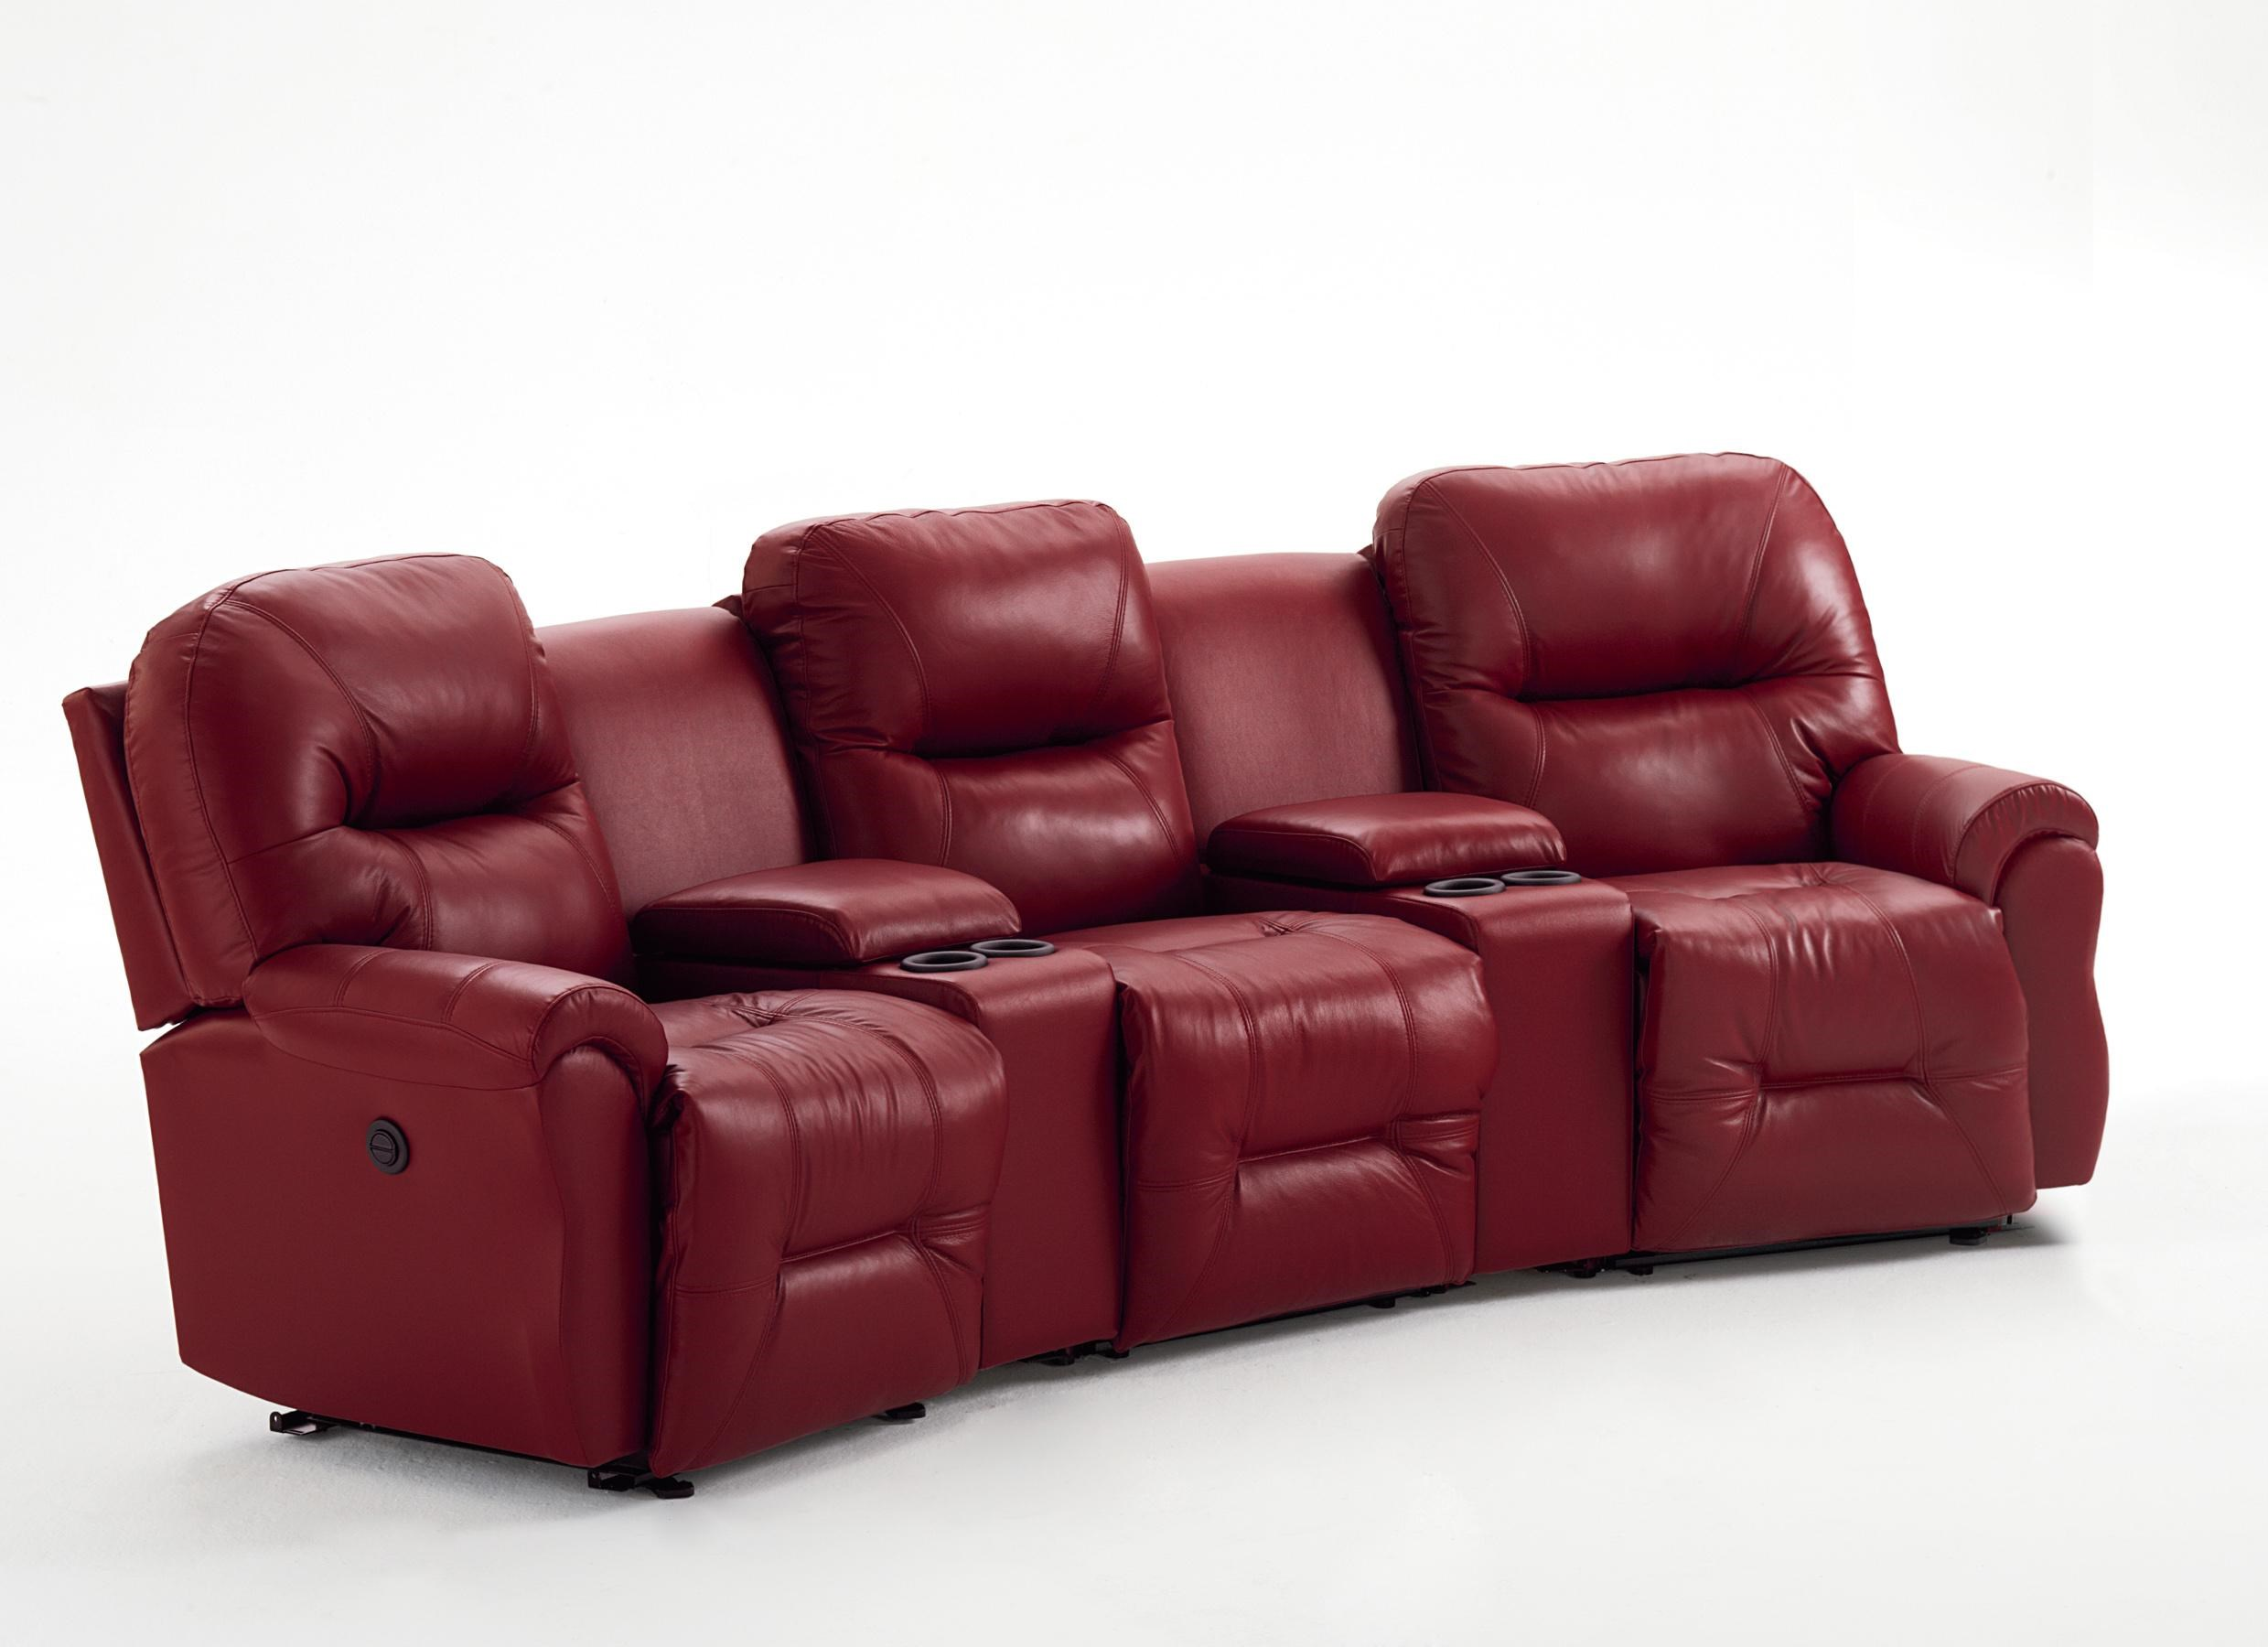 Best Home Furnishings Bodie 3-Seater Power Reclining Home Theater Group  sc 1 st  Wayside Furniture & Best Home Furnishings Bodie 3-Seater Power Reclining Home Theater ... islam-shia.org